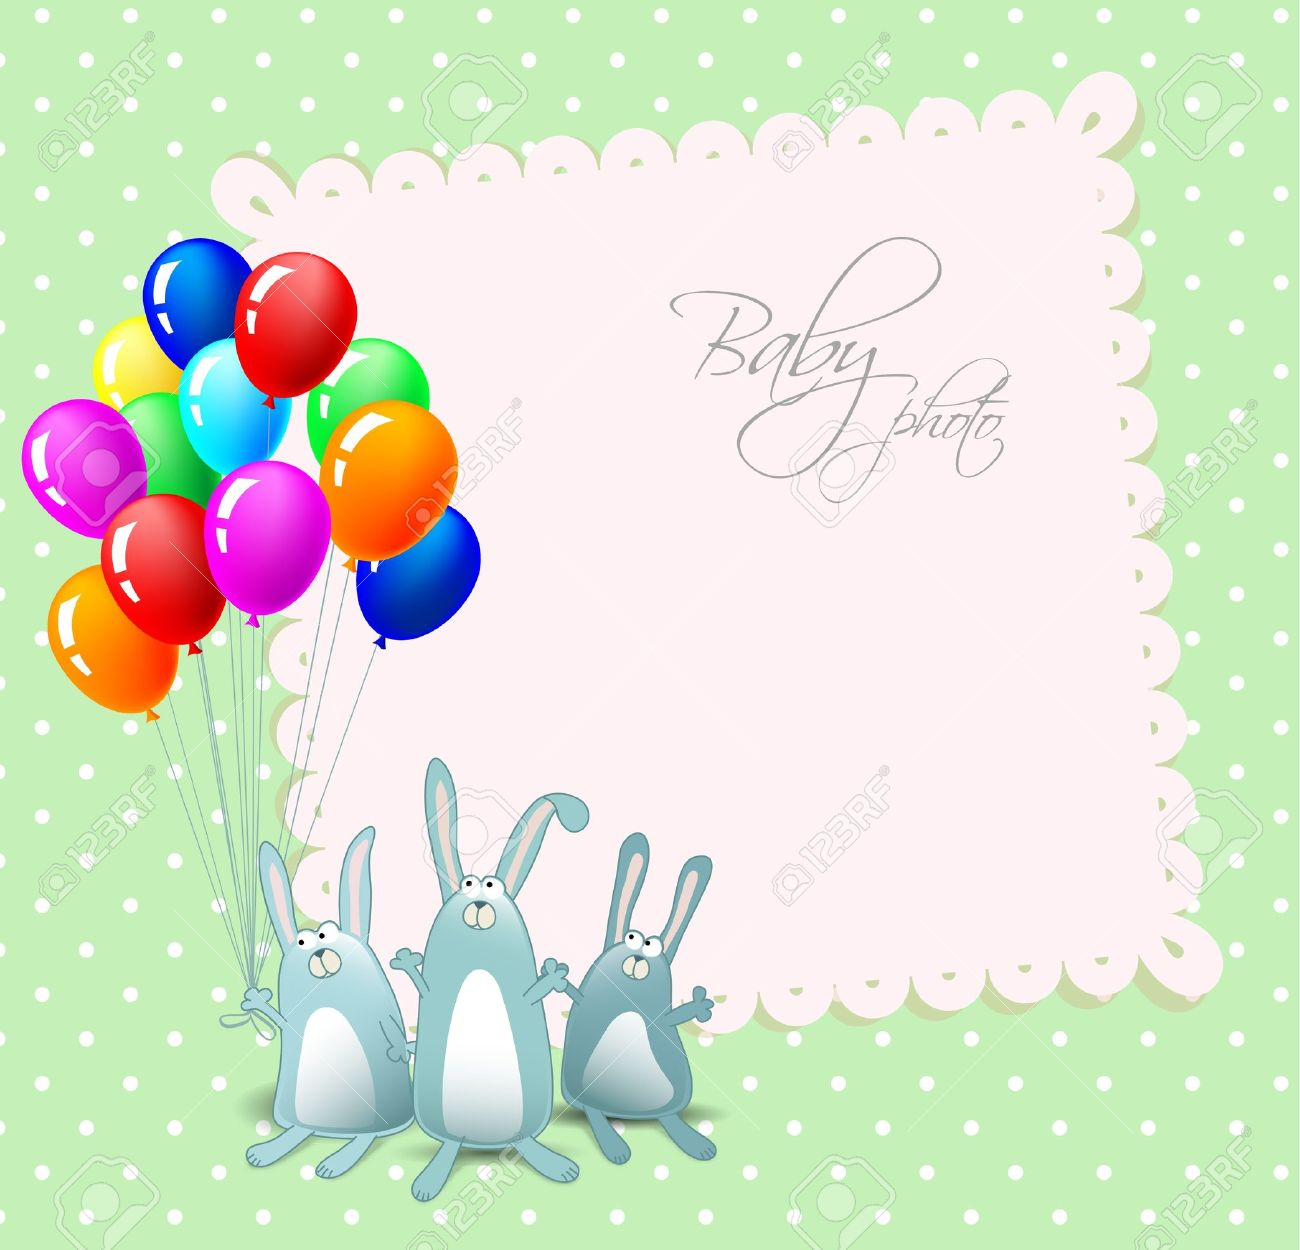 Happy Birthday Card With Rabbits And Balloons Stock Vector